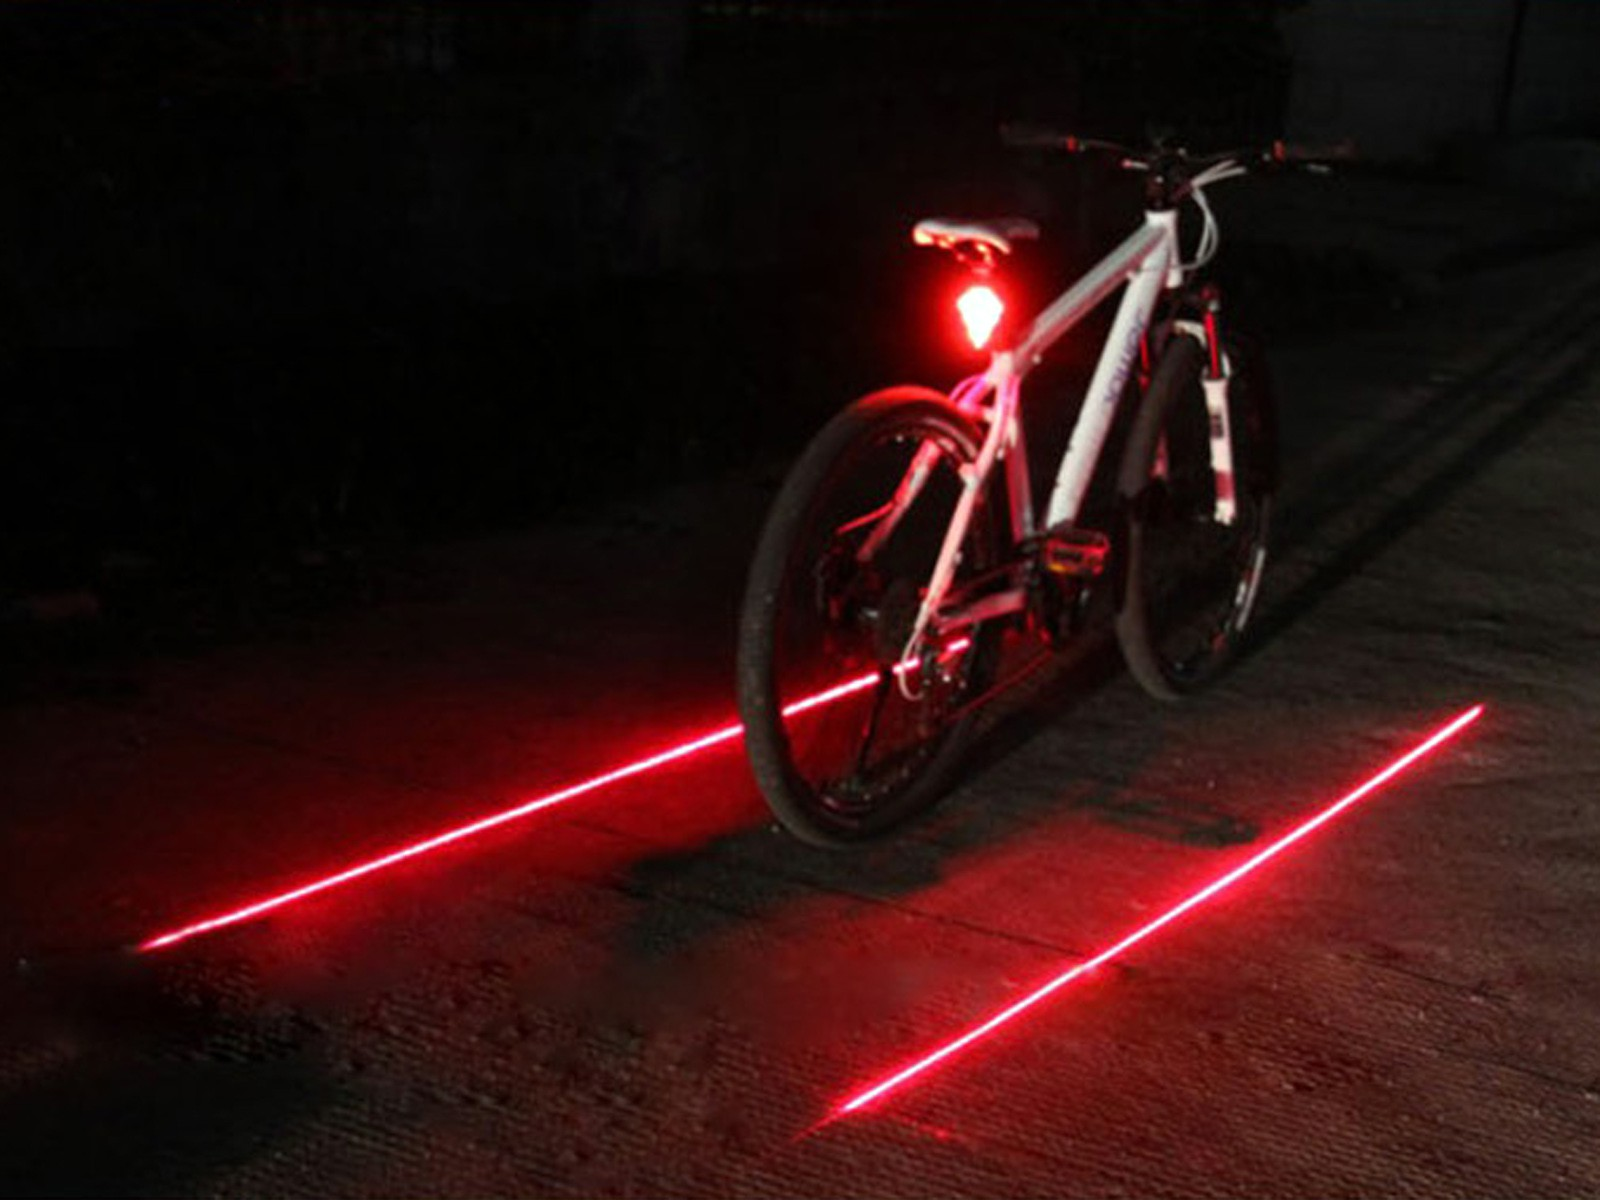 Eclairage Velo Led Usb Led Laser Lampe Feux Arriere Velo Moto Vtt Usb Bicycle